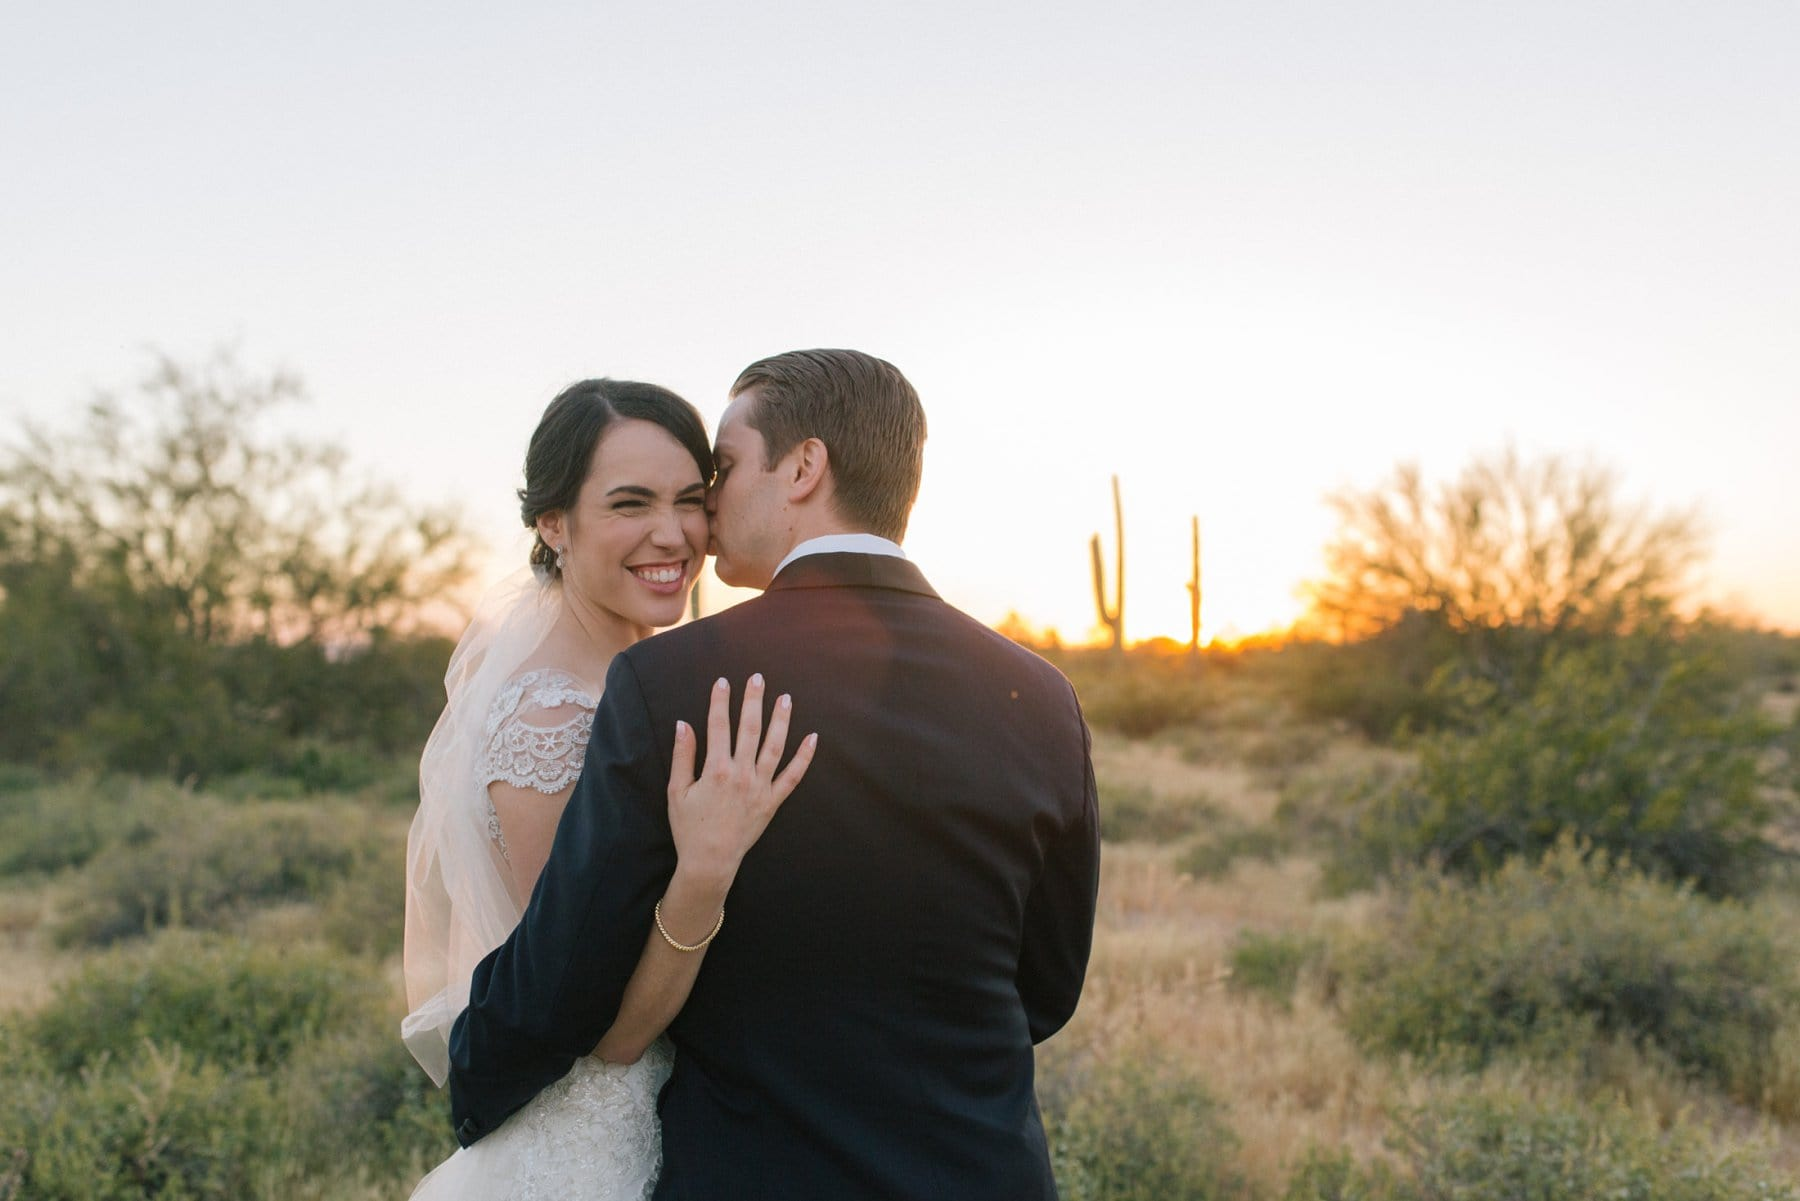 natural laughing bride and groom photos in Arizona desert at Desert Foothills wedding venue